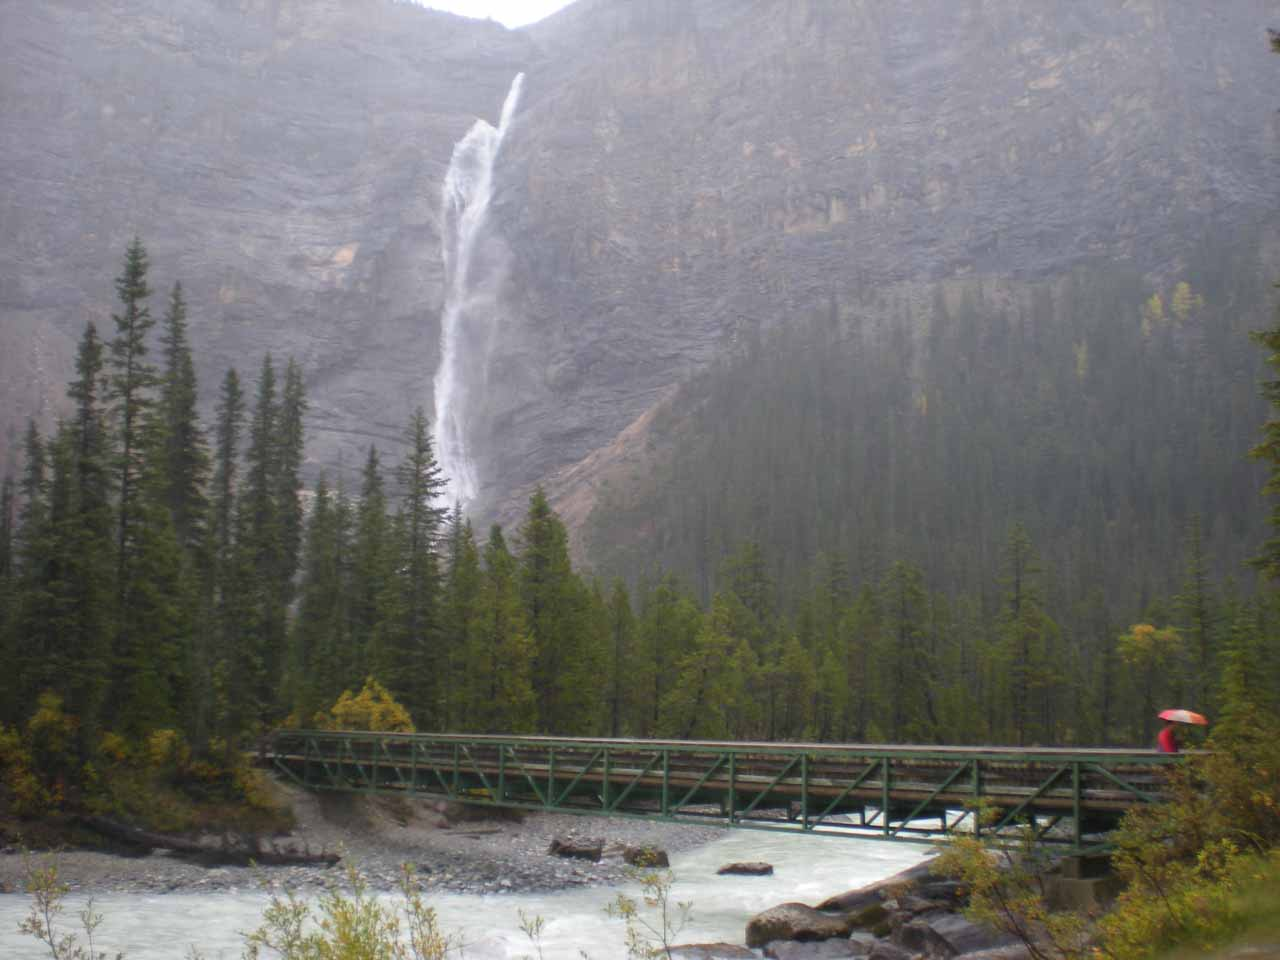 Julie crossing the bridge over the Yoho River before the Takakkaw Falls